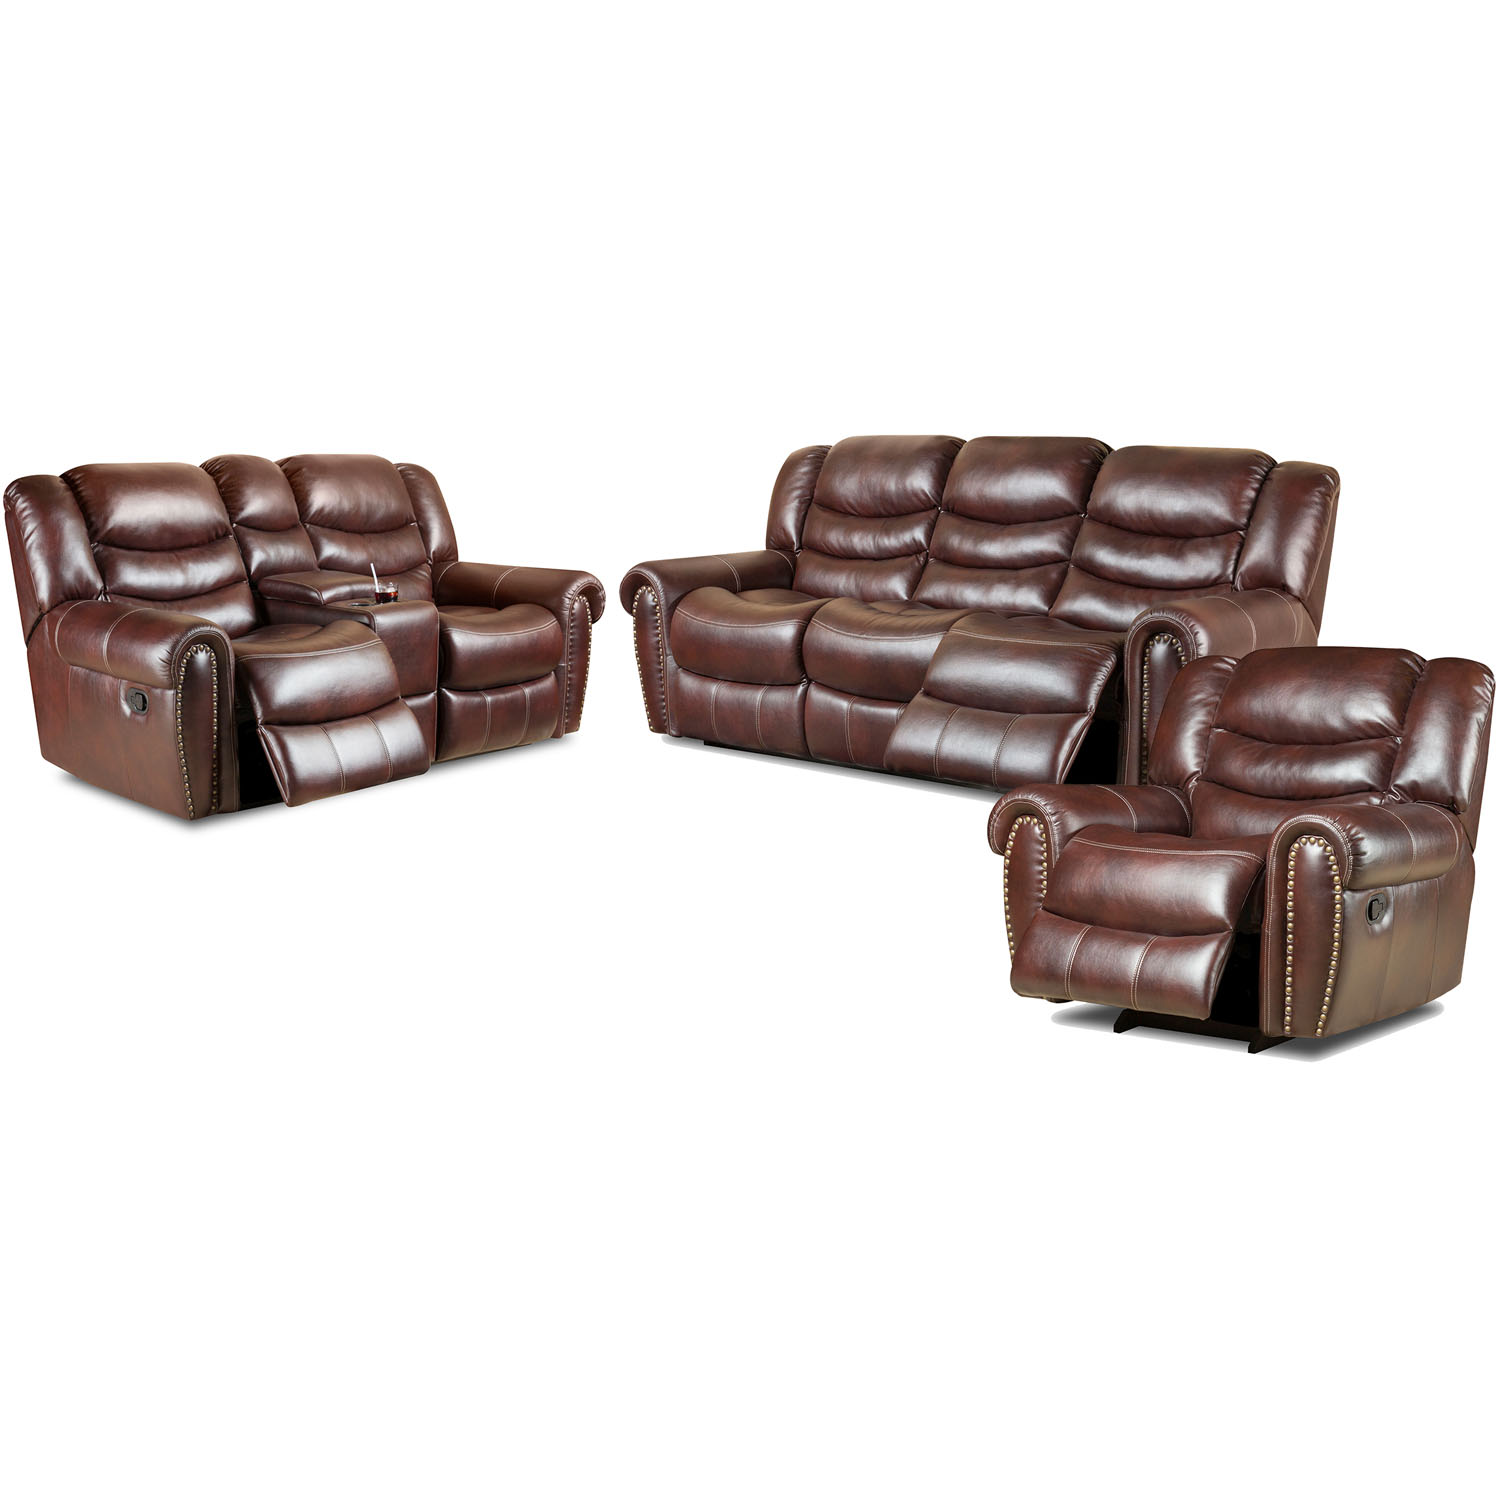 Cambridge Lancaster Three Piece Living Set: Sofa, Loveseat, Recliner